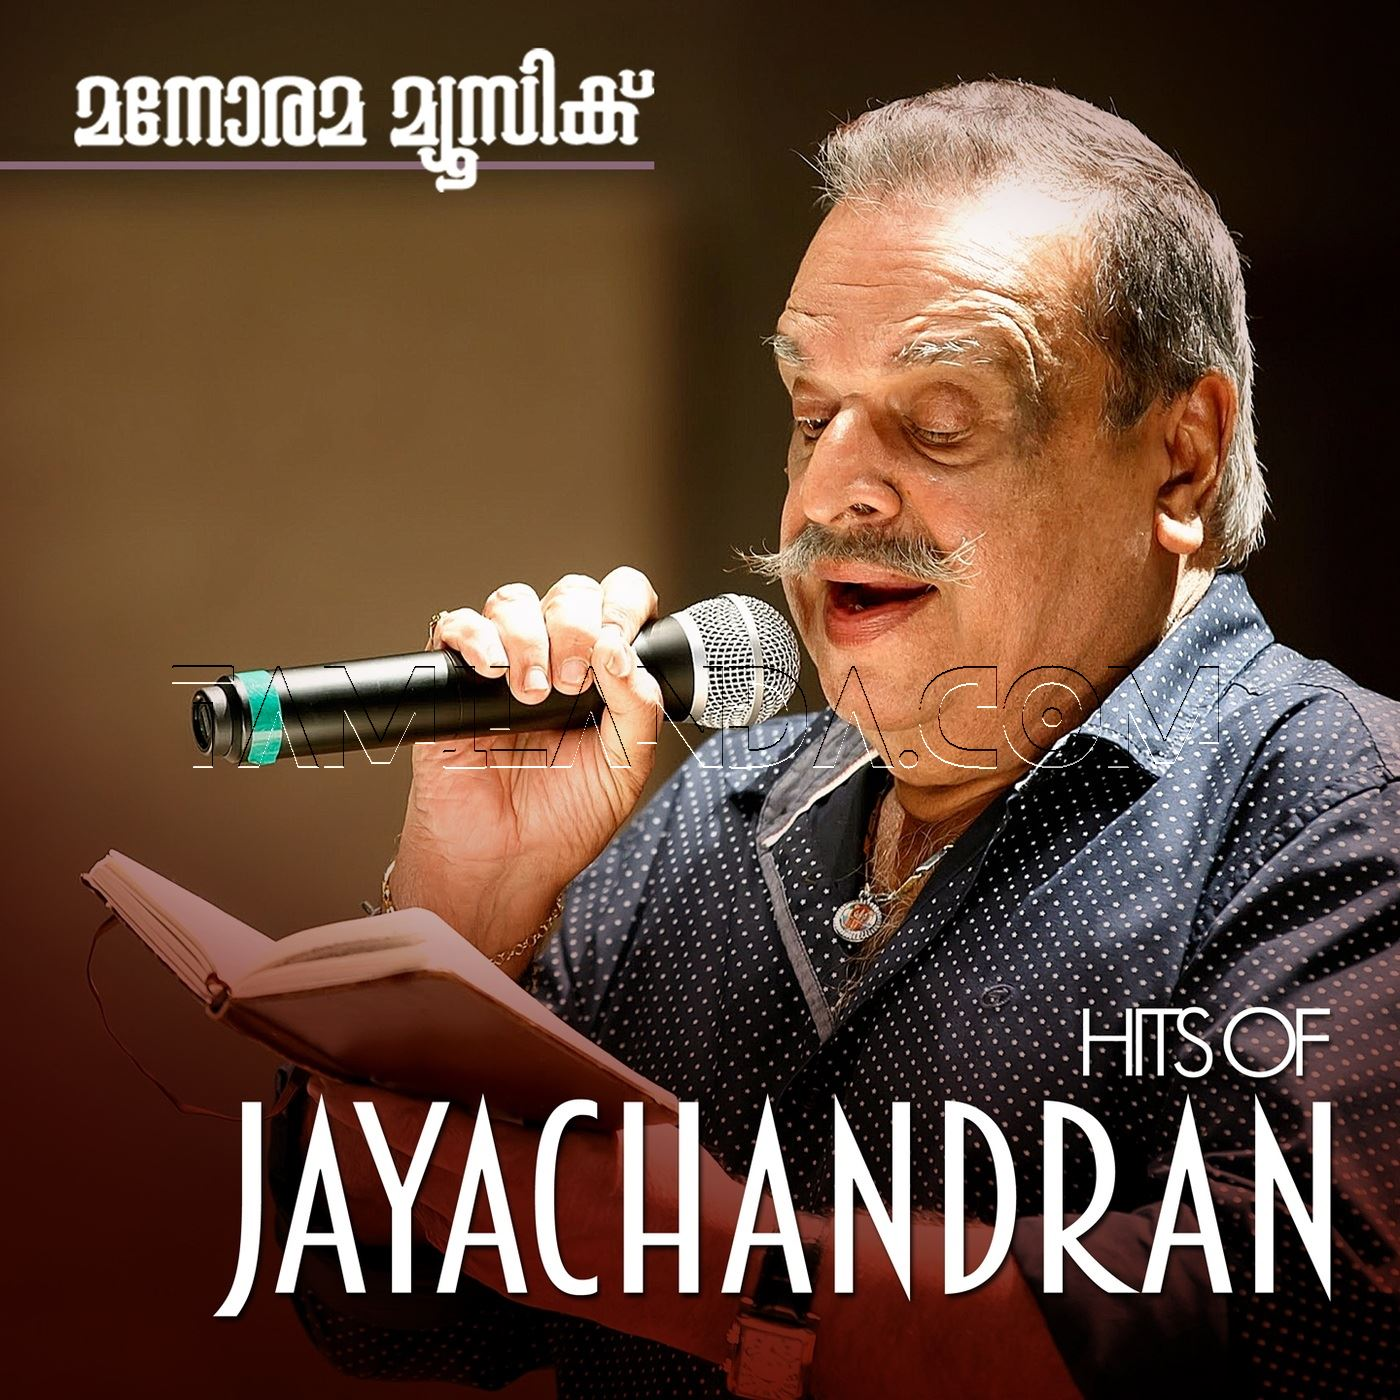 Hits of P. Jayachandran, Vol. 2 FLAC Songs